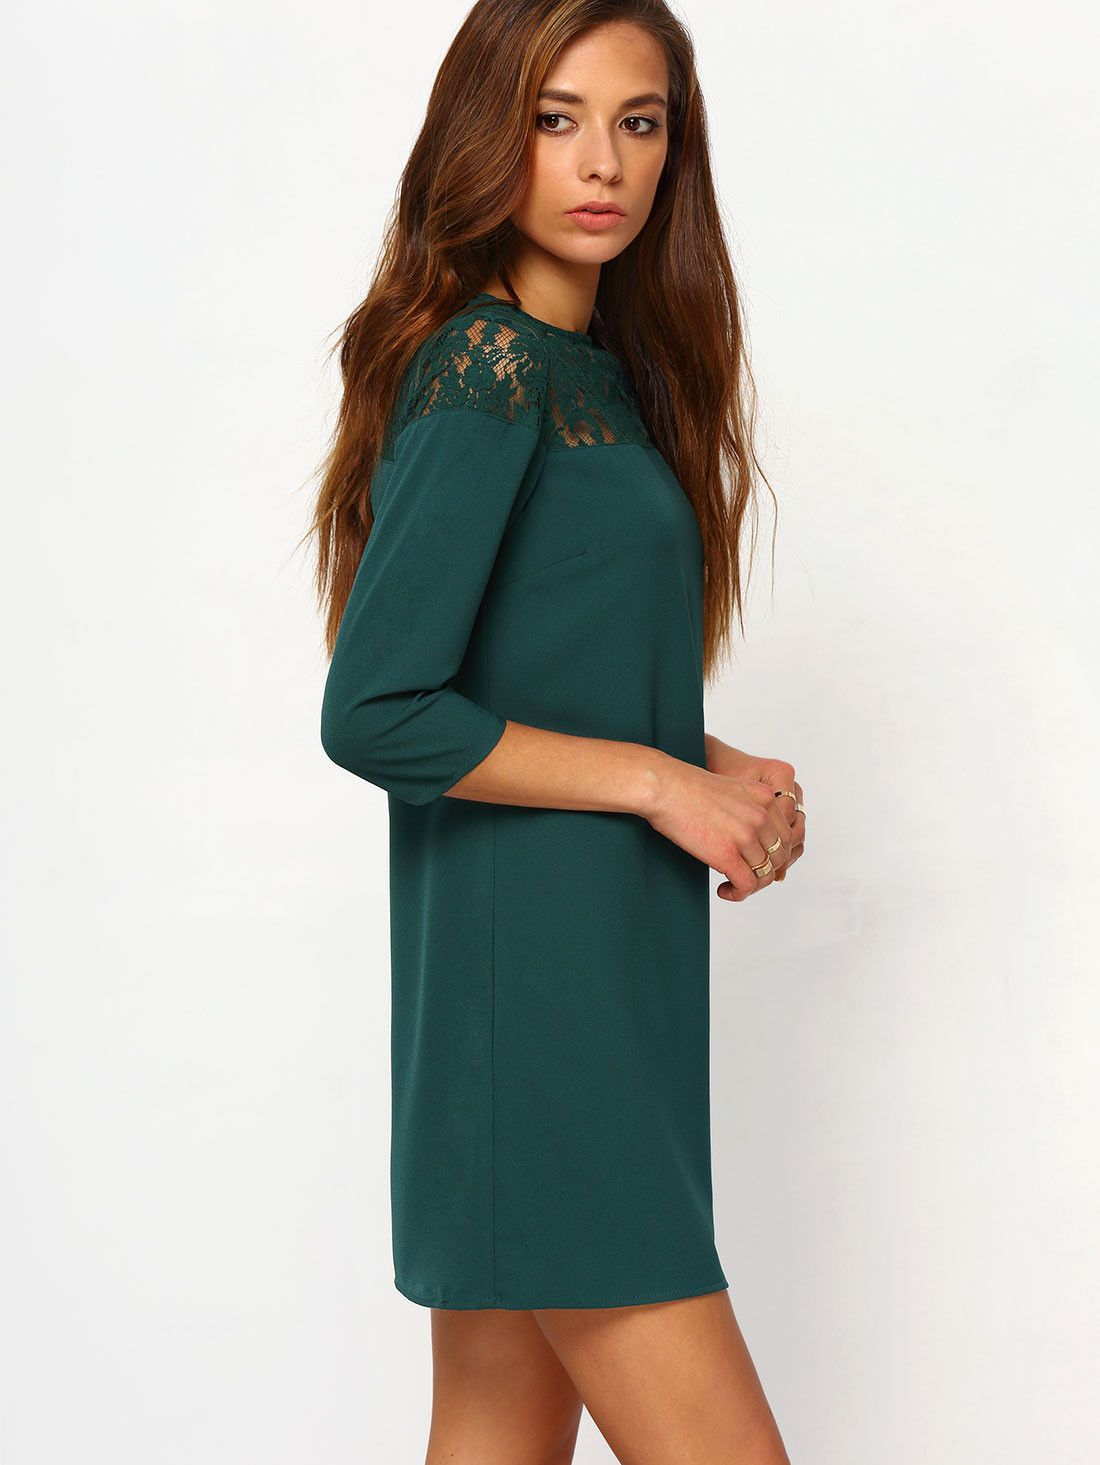 33a1577b8002 Dark Green Round Neck With Lace Dress